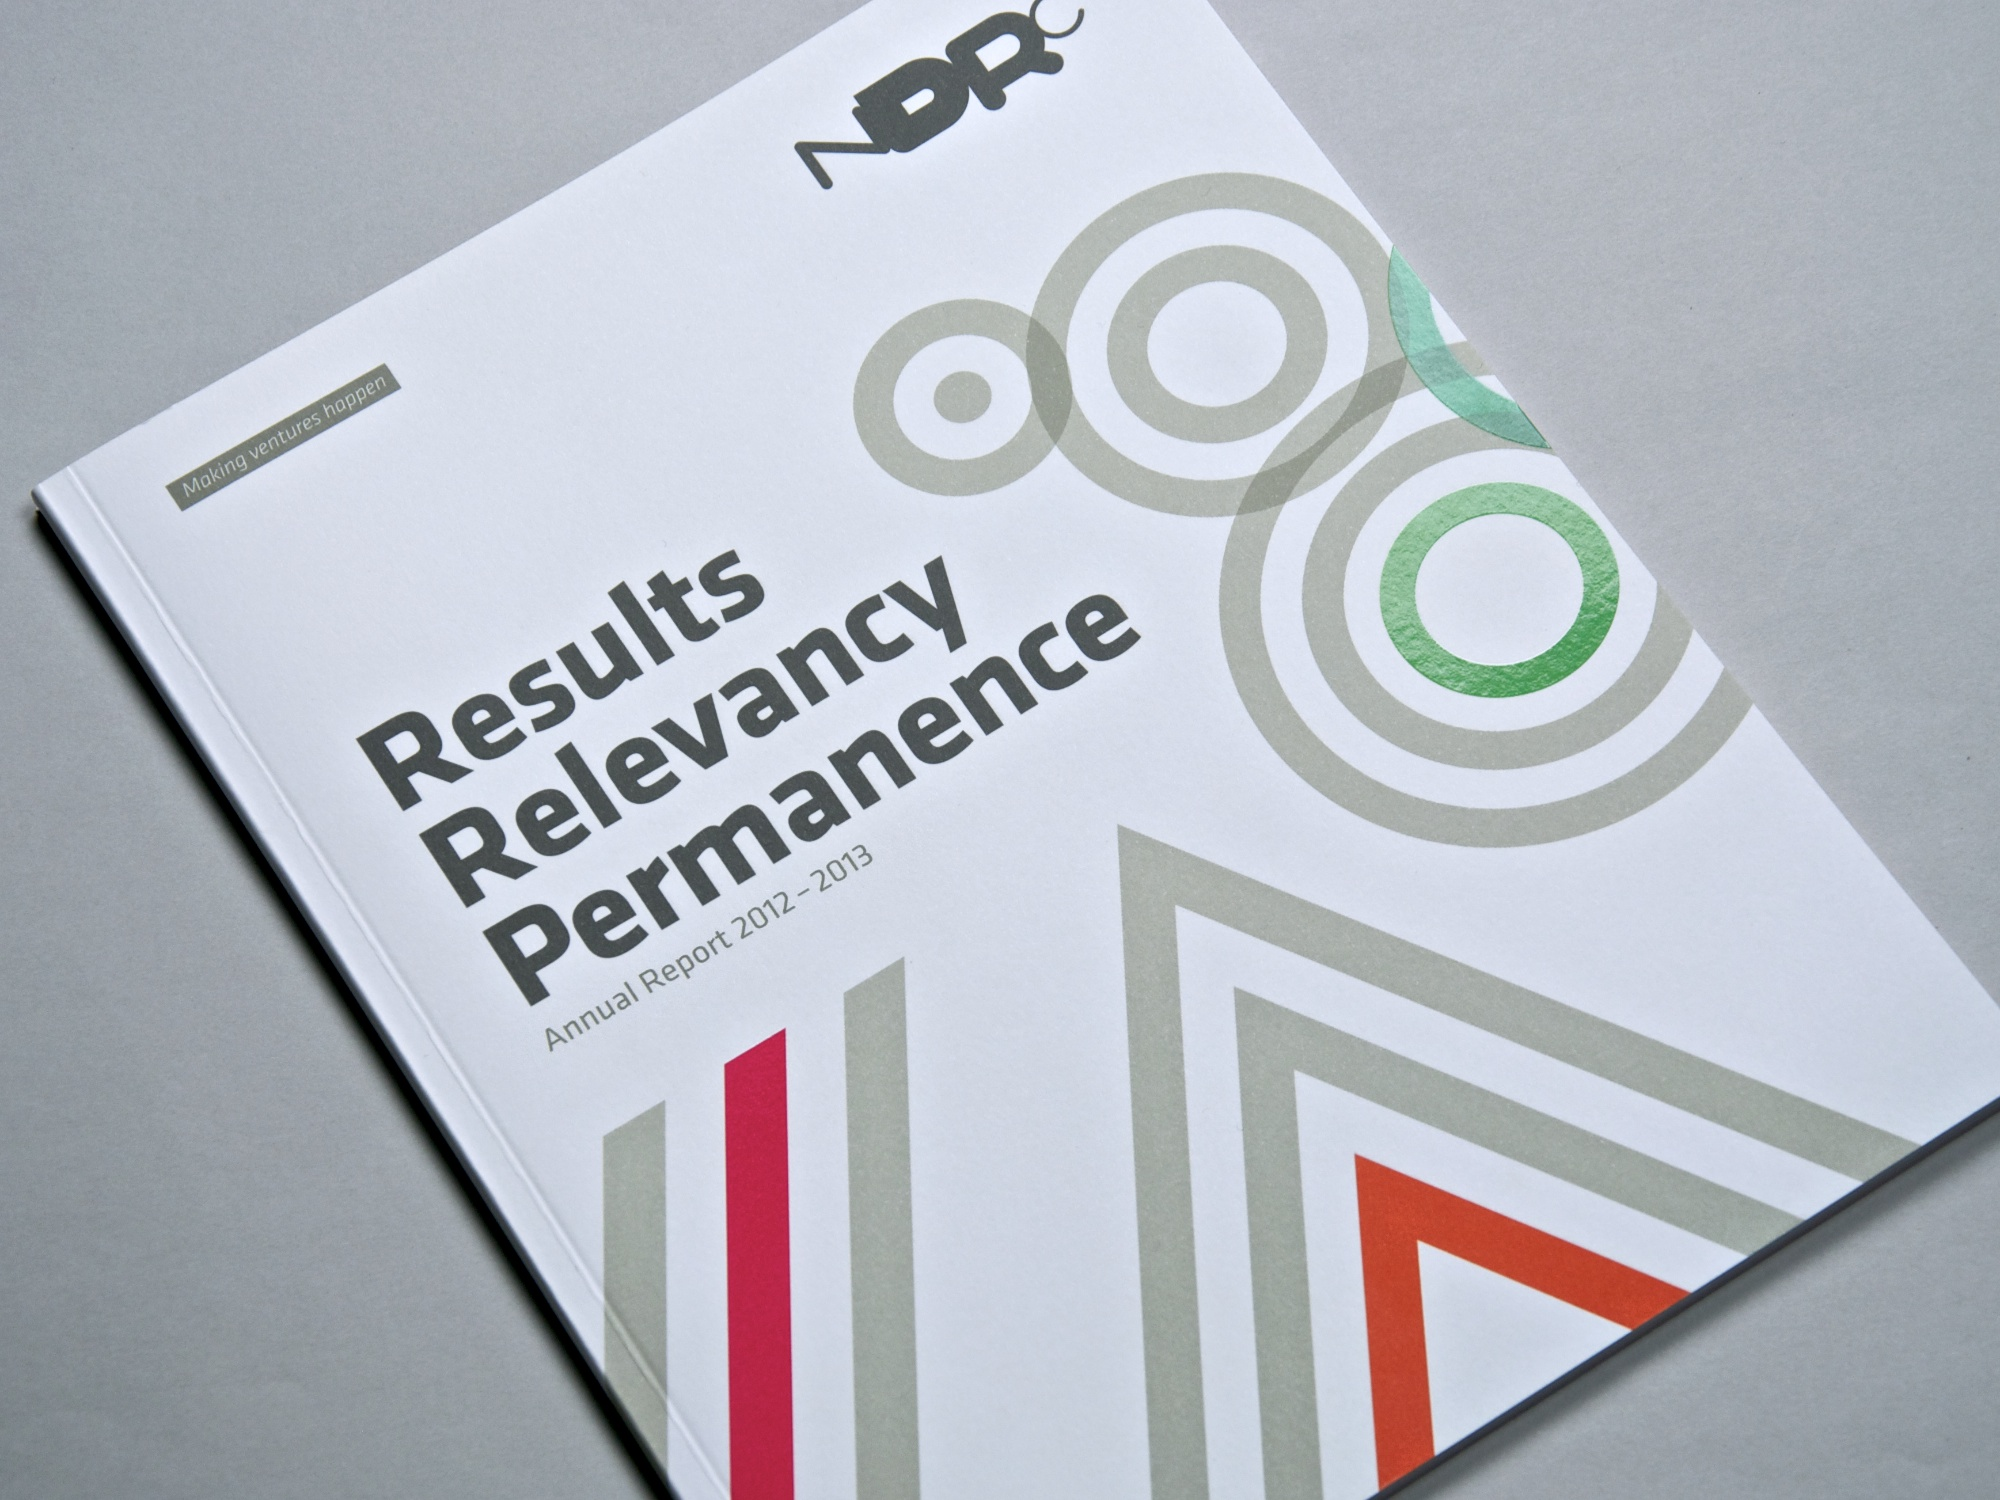 Cover image: NDRC Annual Report 2012–2013